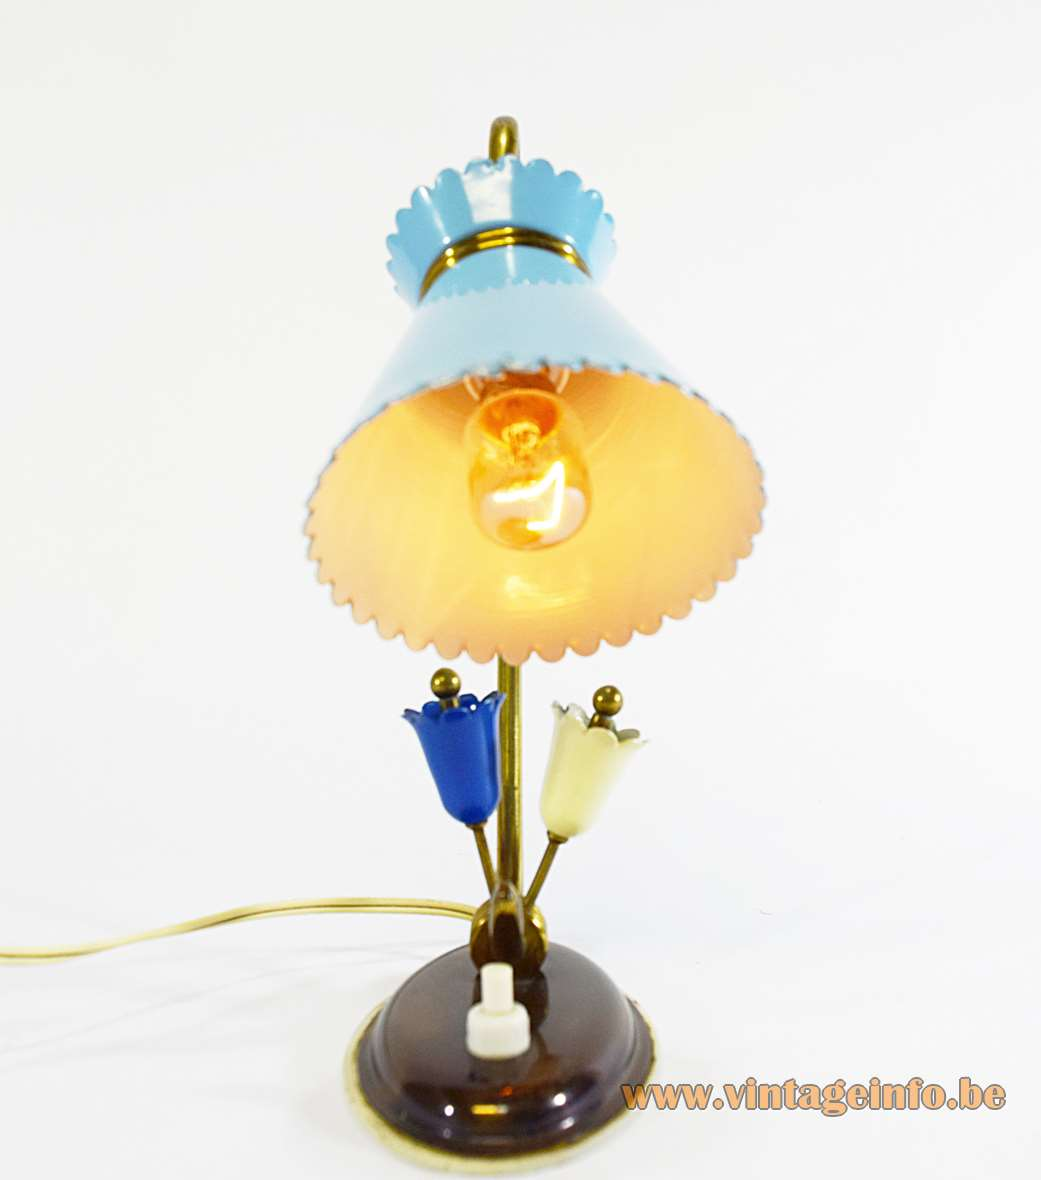 Diabolo bedside table lamp oval flowers base curved folded brass rod blue conical lampshade 1950s 1960s